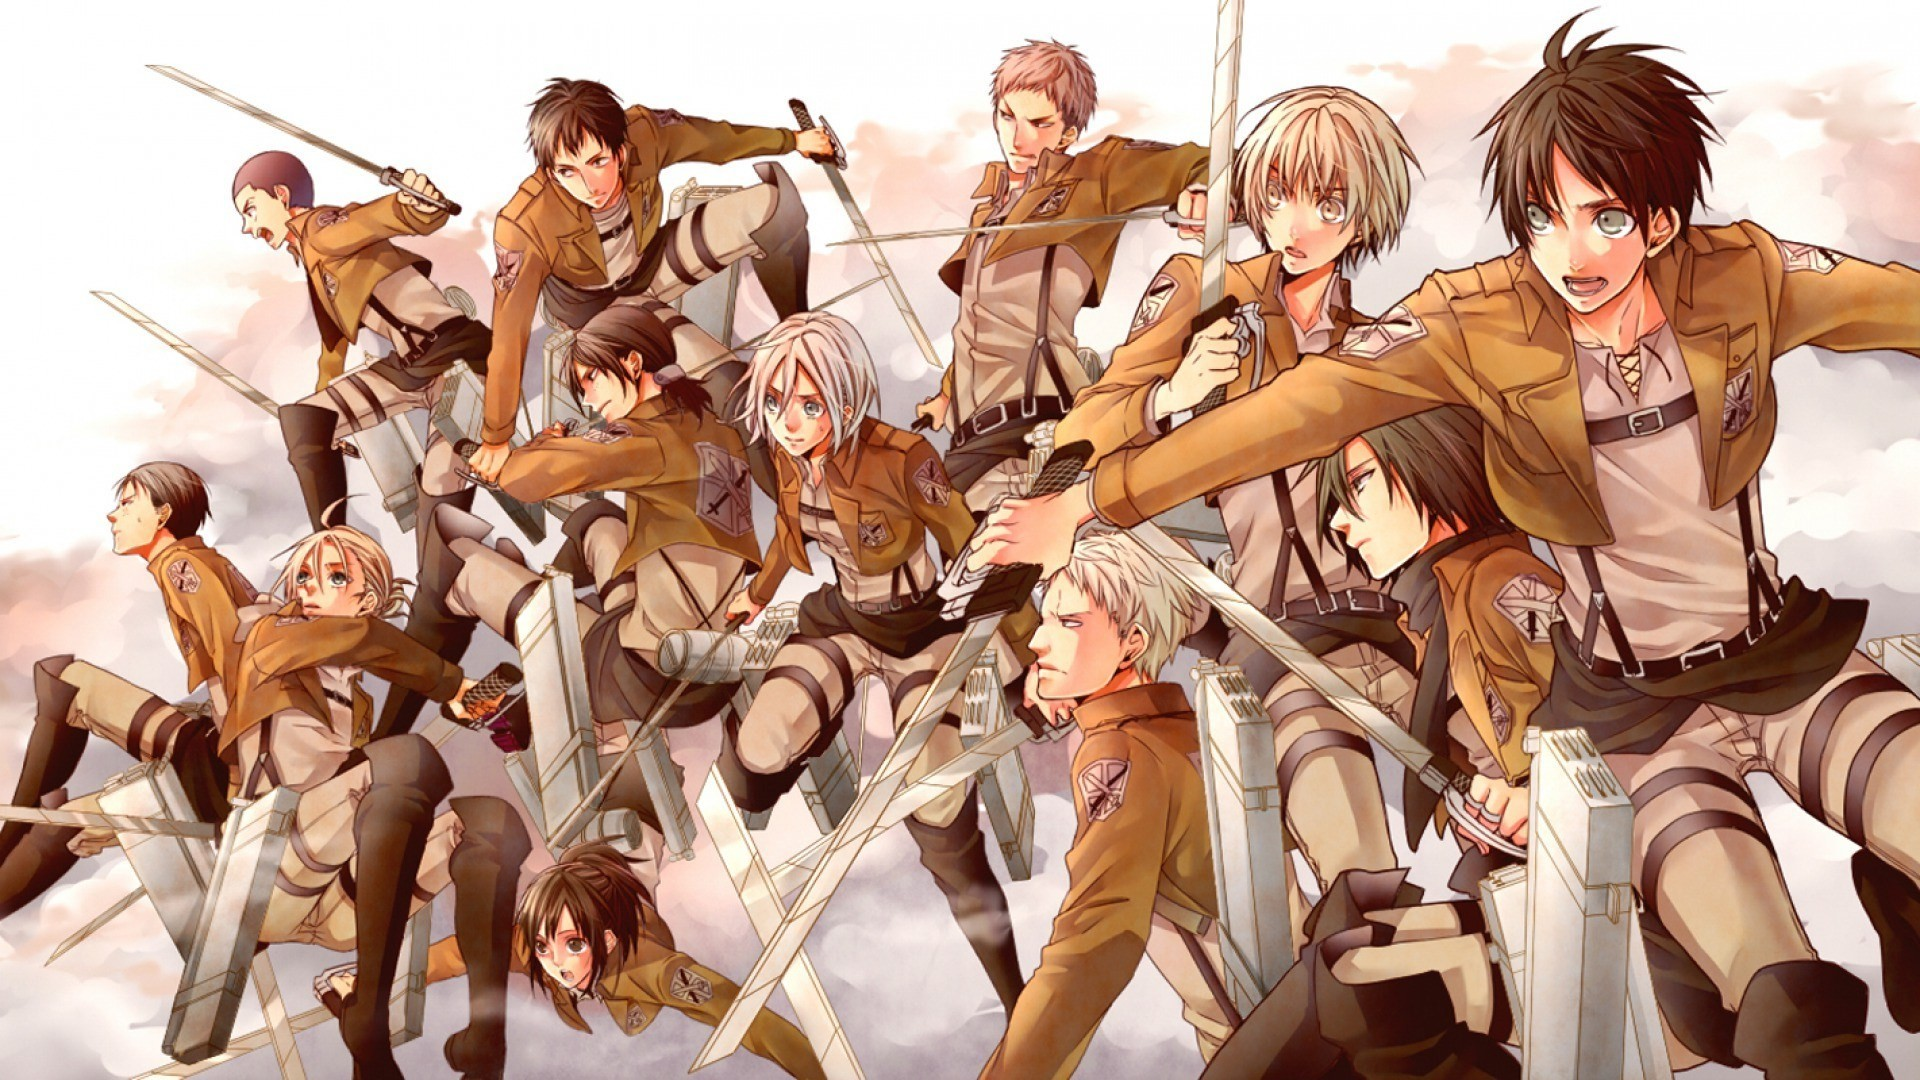 1920x1080 Widescreen Wallpaper: attack on titan